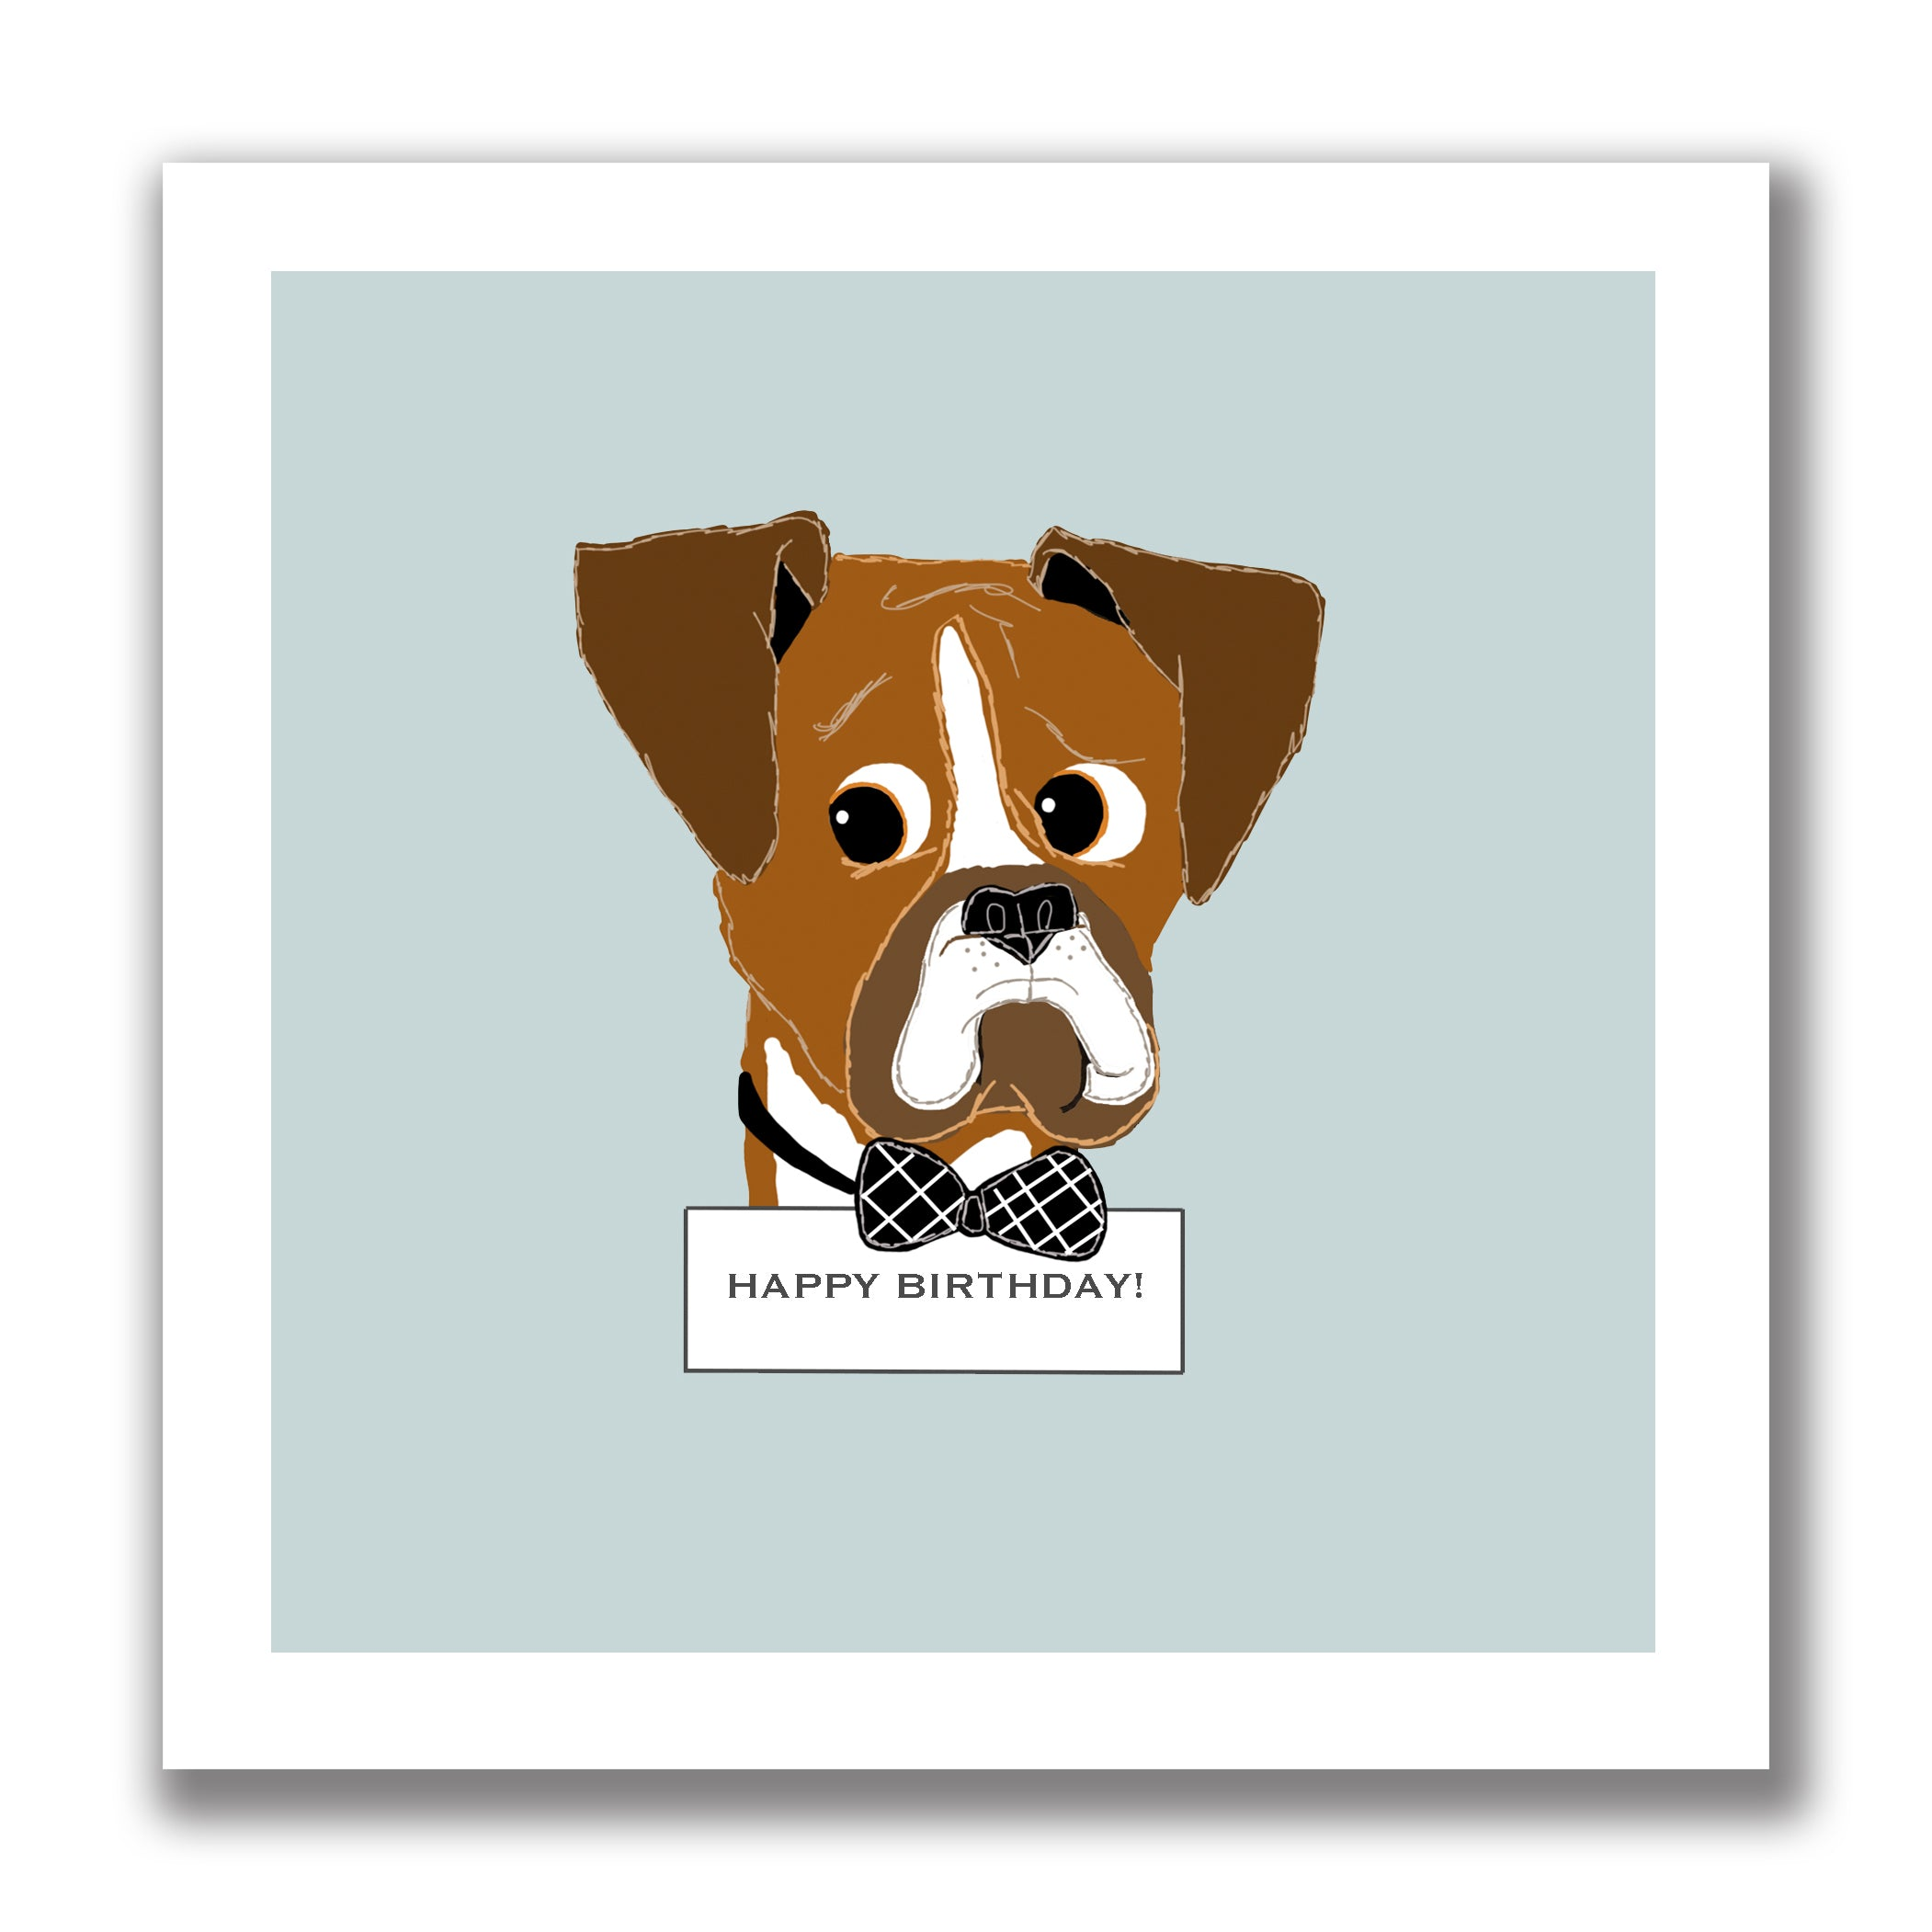 Free talking birthday cards fresh office christmas cards birthday fresh dog birthday cards graphics eccleshallfccom boxerboyart dog birthday cards free talking birthday cards fresh free talking birthday cards fresh bookmarktalkfo Choice Image